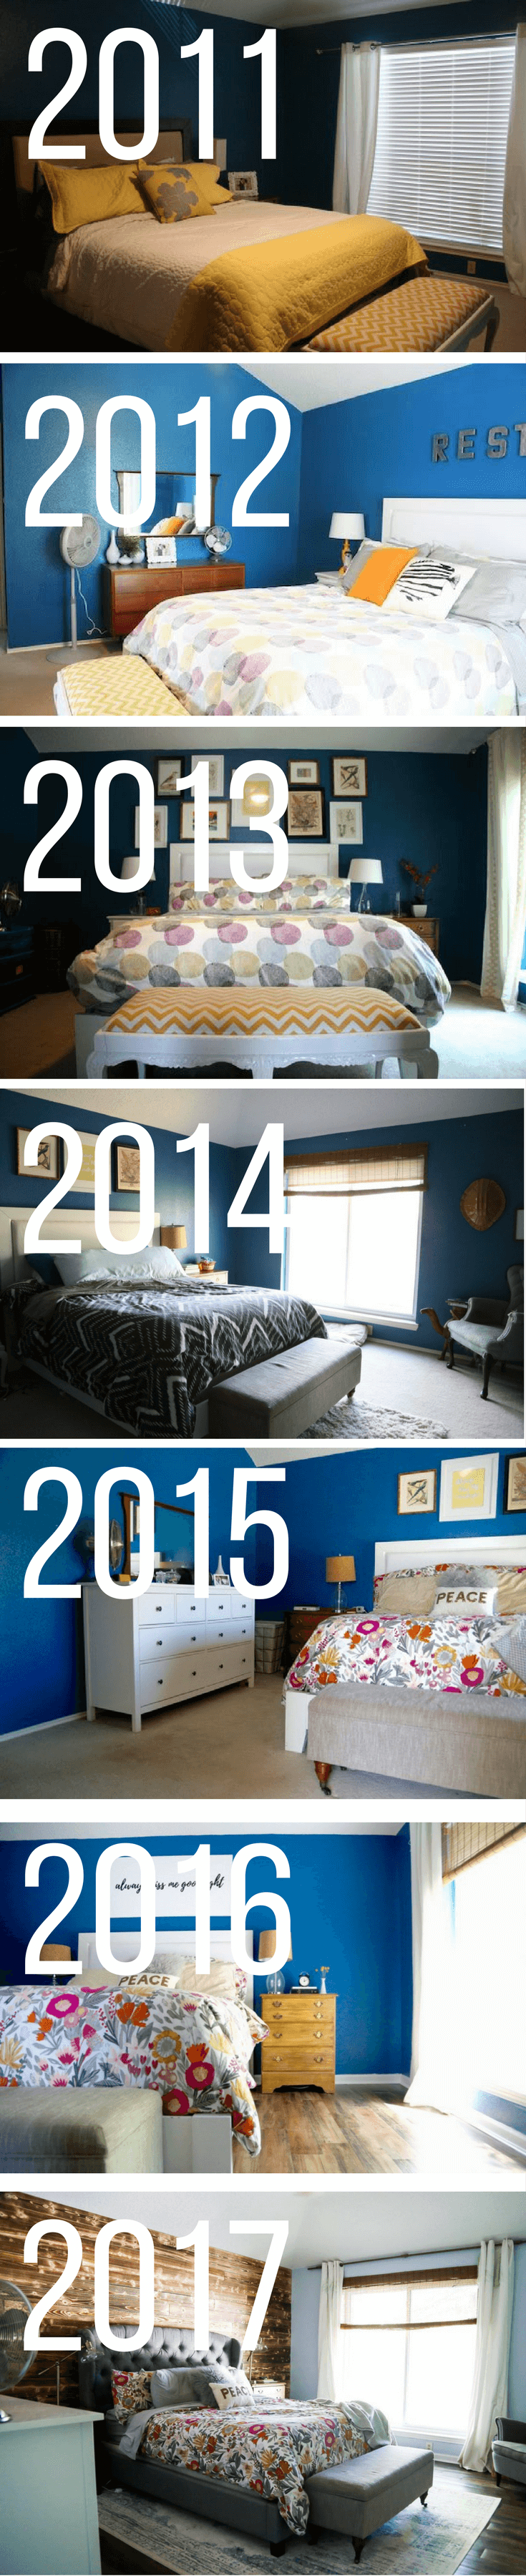 A master bedroom renovation throughout the years - before and after photos of a DIY master bedroom renovation